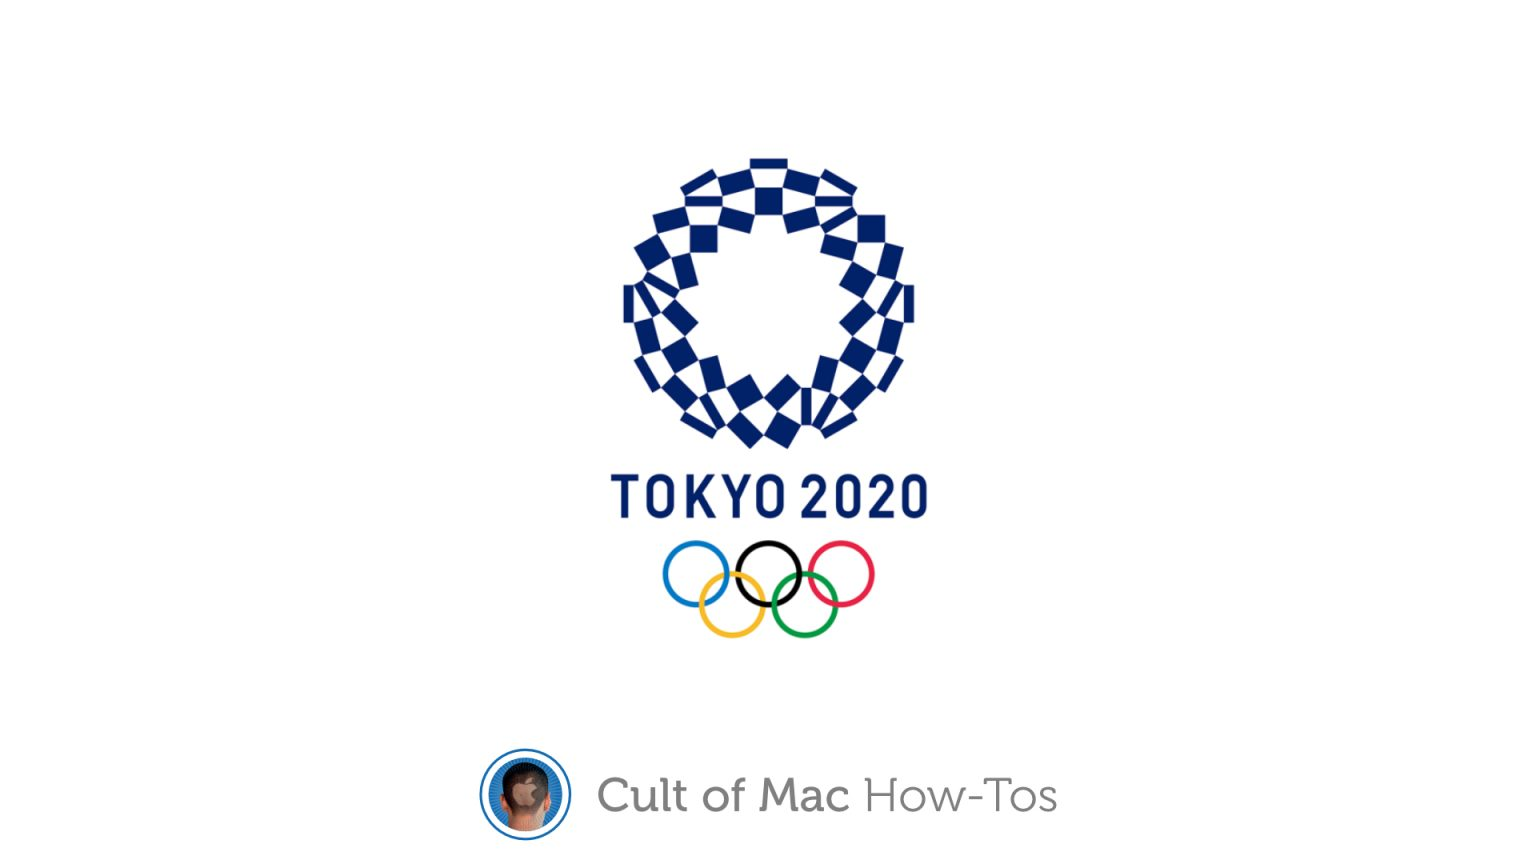 How to watch Tokyo 2020